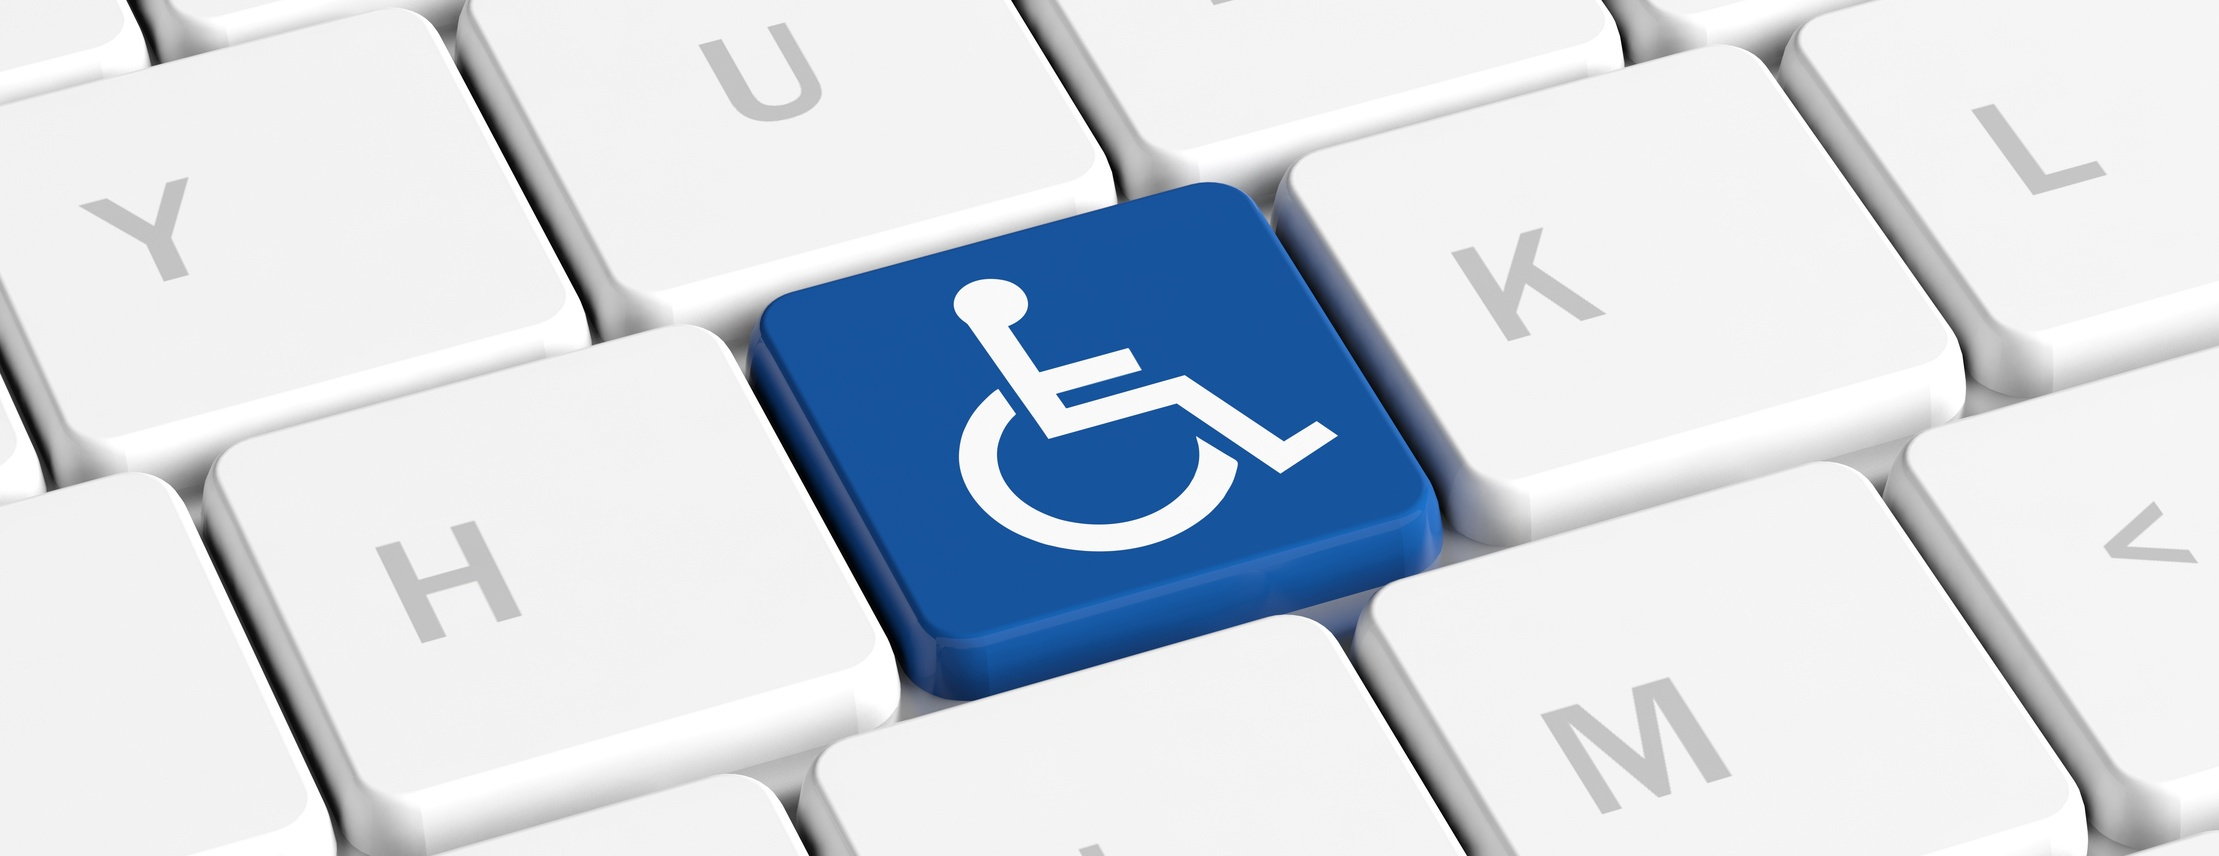 Accessibility image, keyboard with wheelchair icon